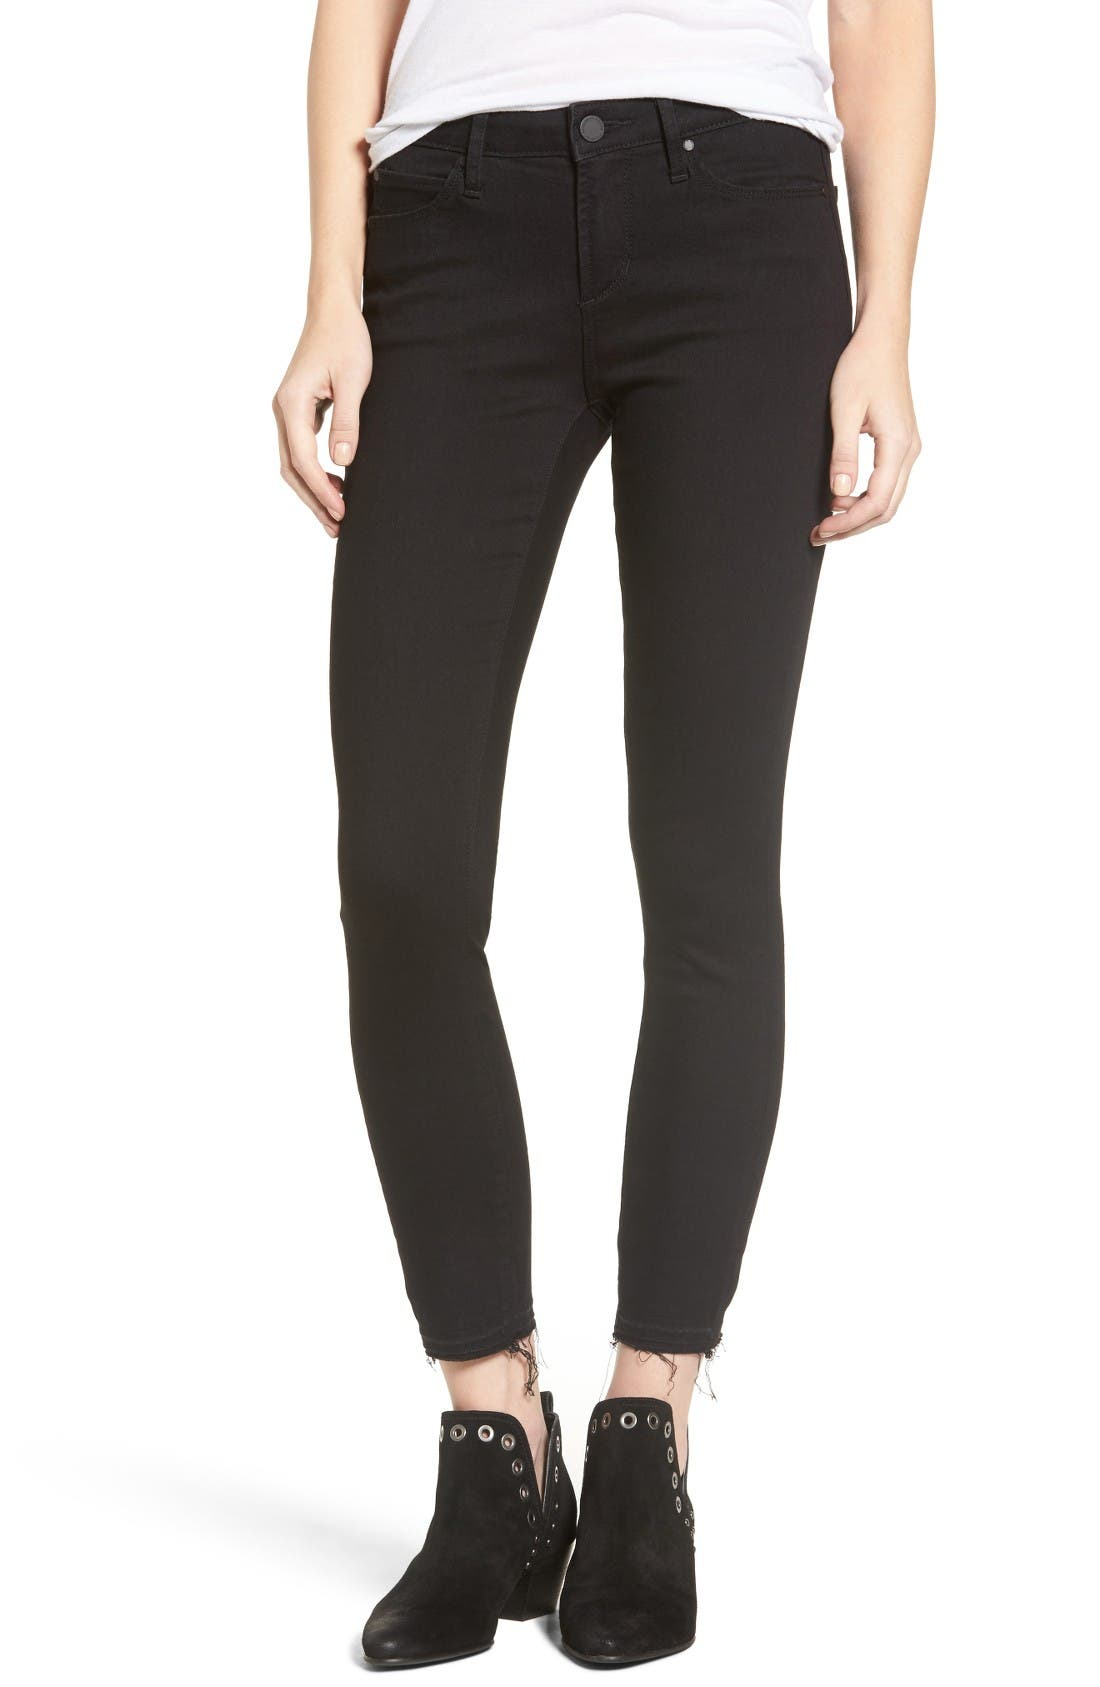 Carly Crop Skinny Jeans,                         Main,                         color, Dunlop